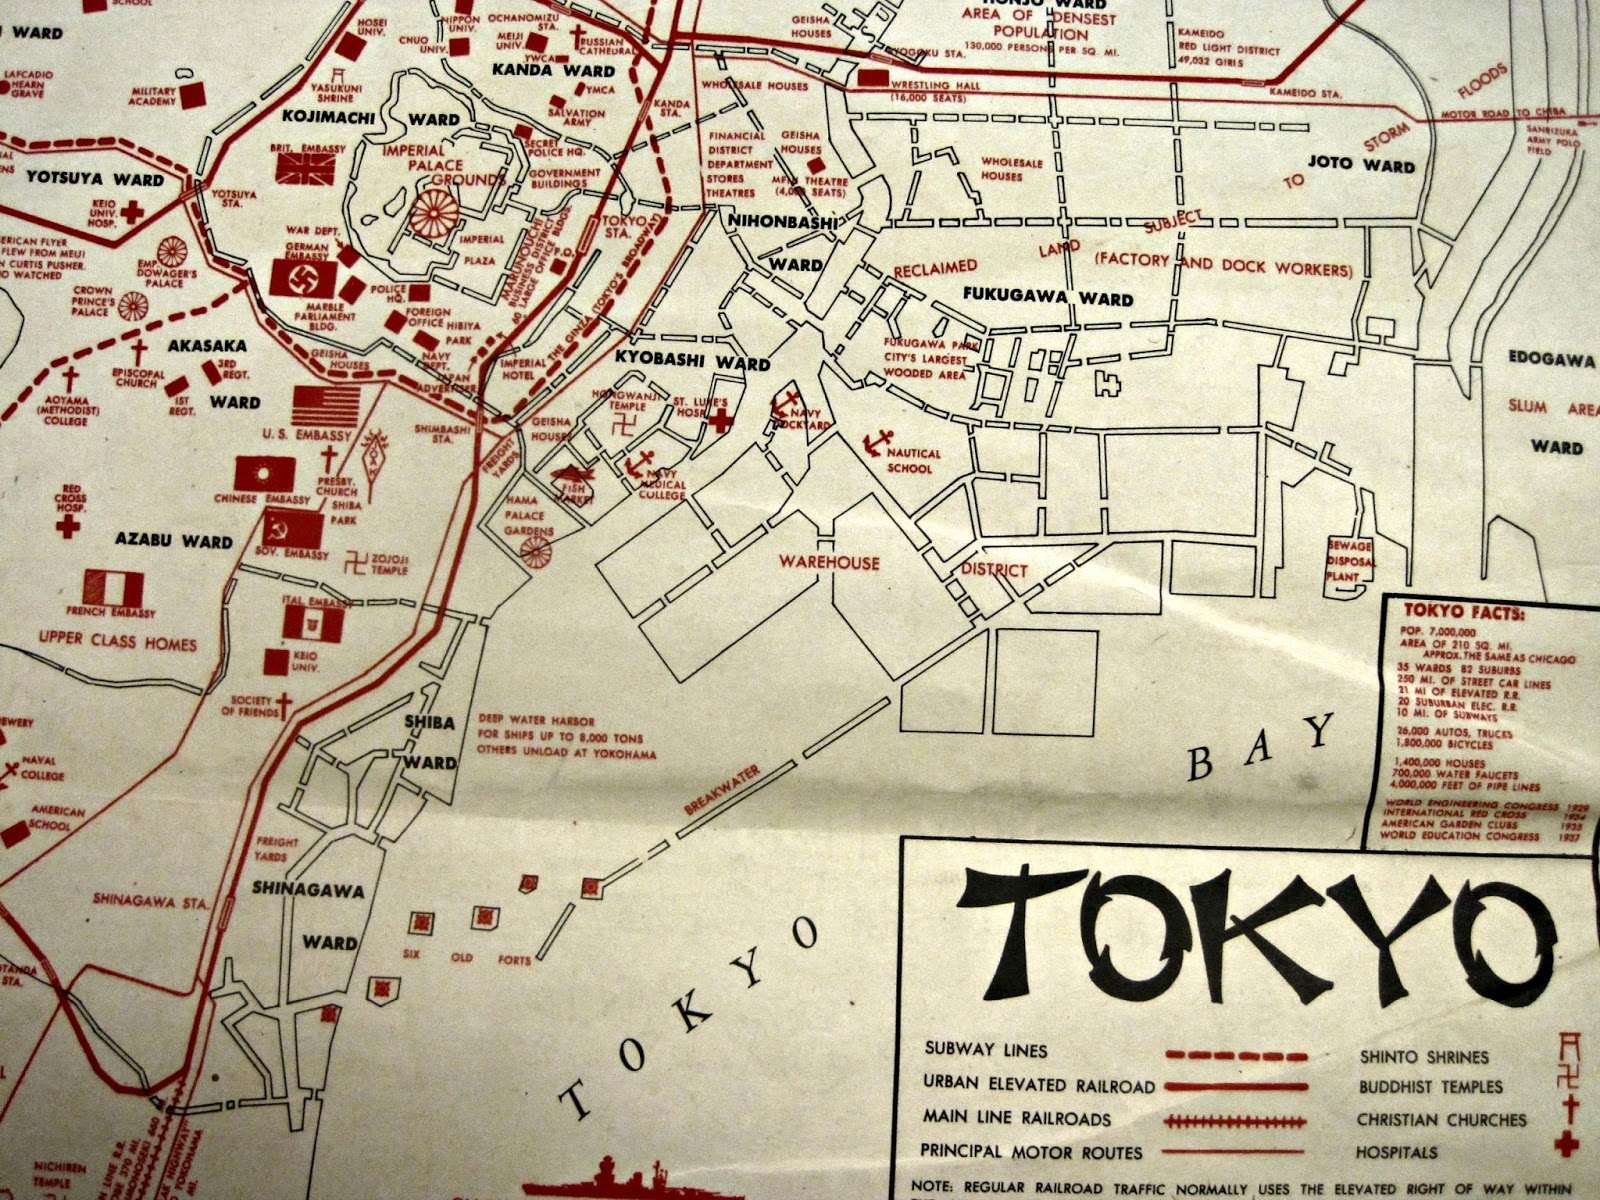 occupation map 1945 st luke s is located just below the kyobashi ward label in the center of the photo